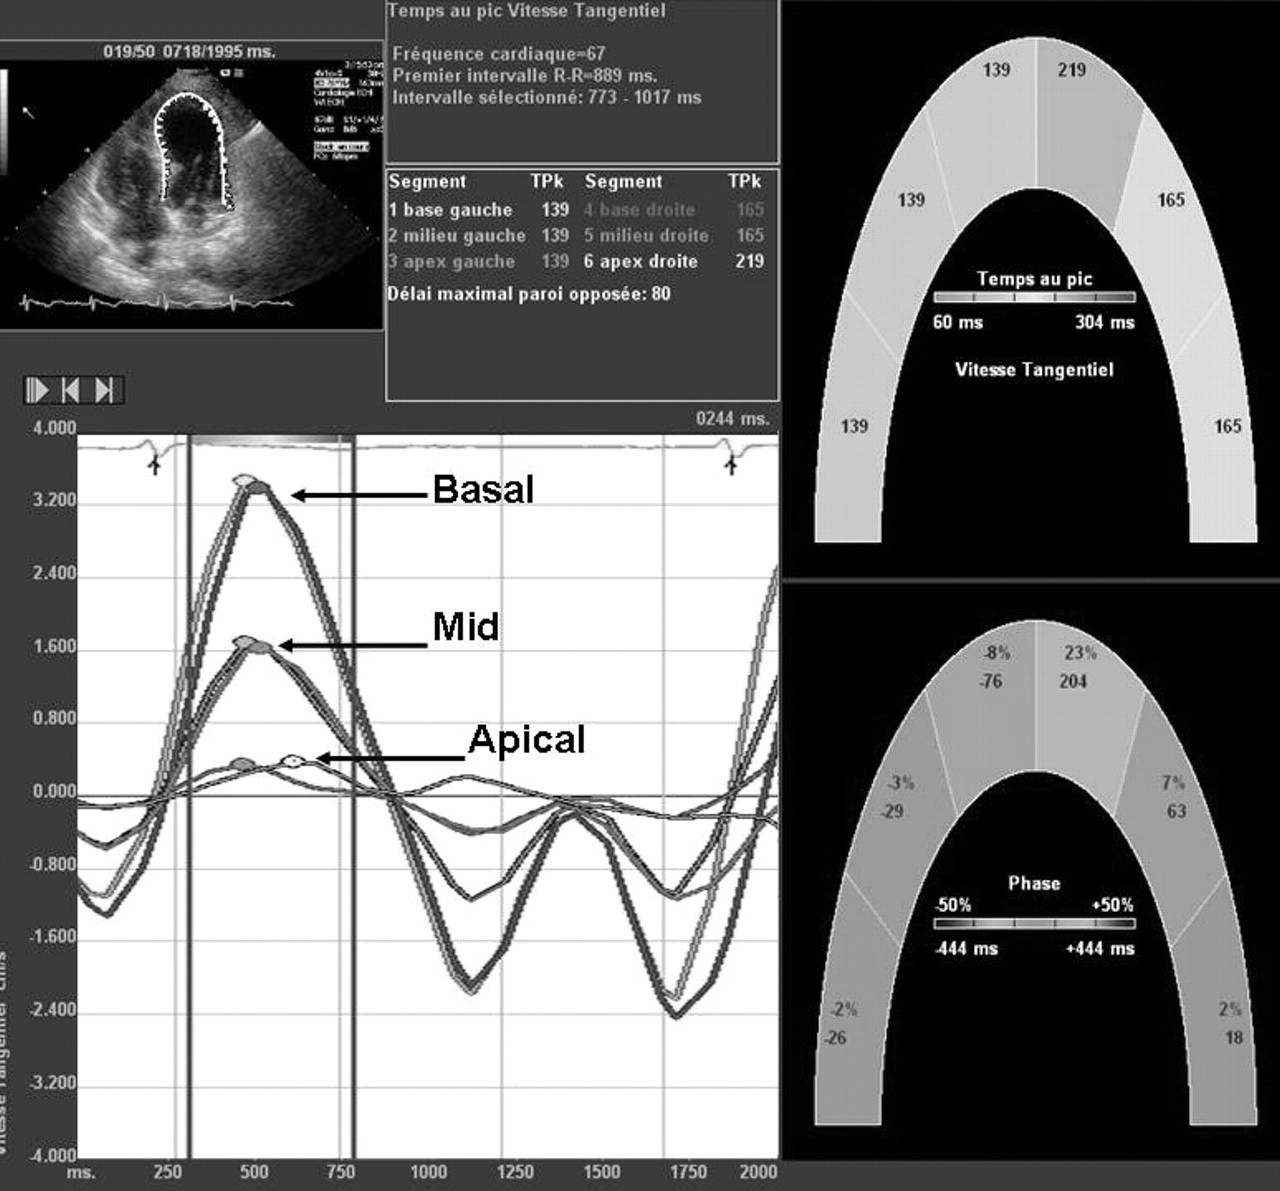 Abstract 2573: Usefulness of 2D Speckle Tracking Echocardiography